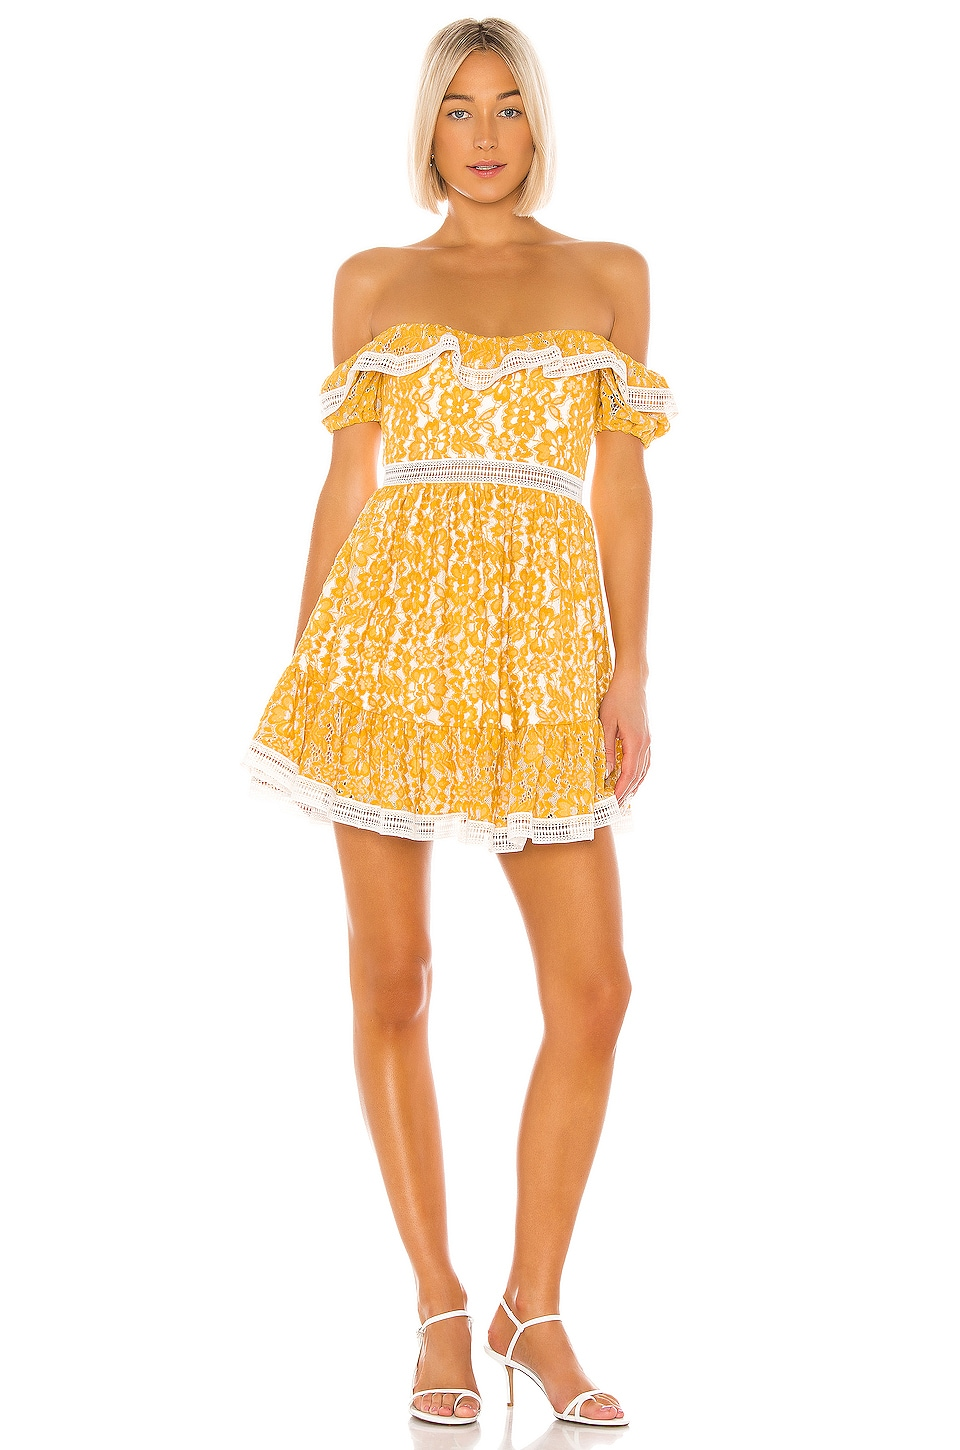 X by NBD Bazzi Mini Dress in Yellow & Ivory